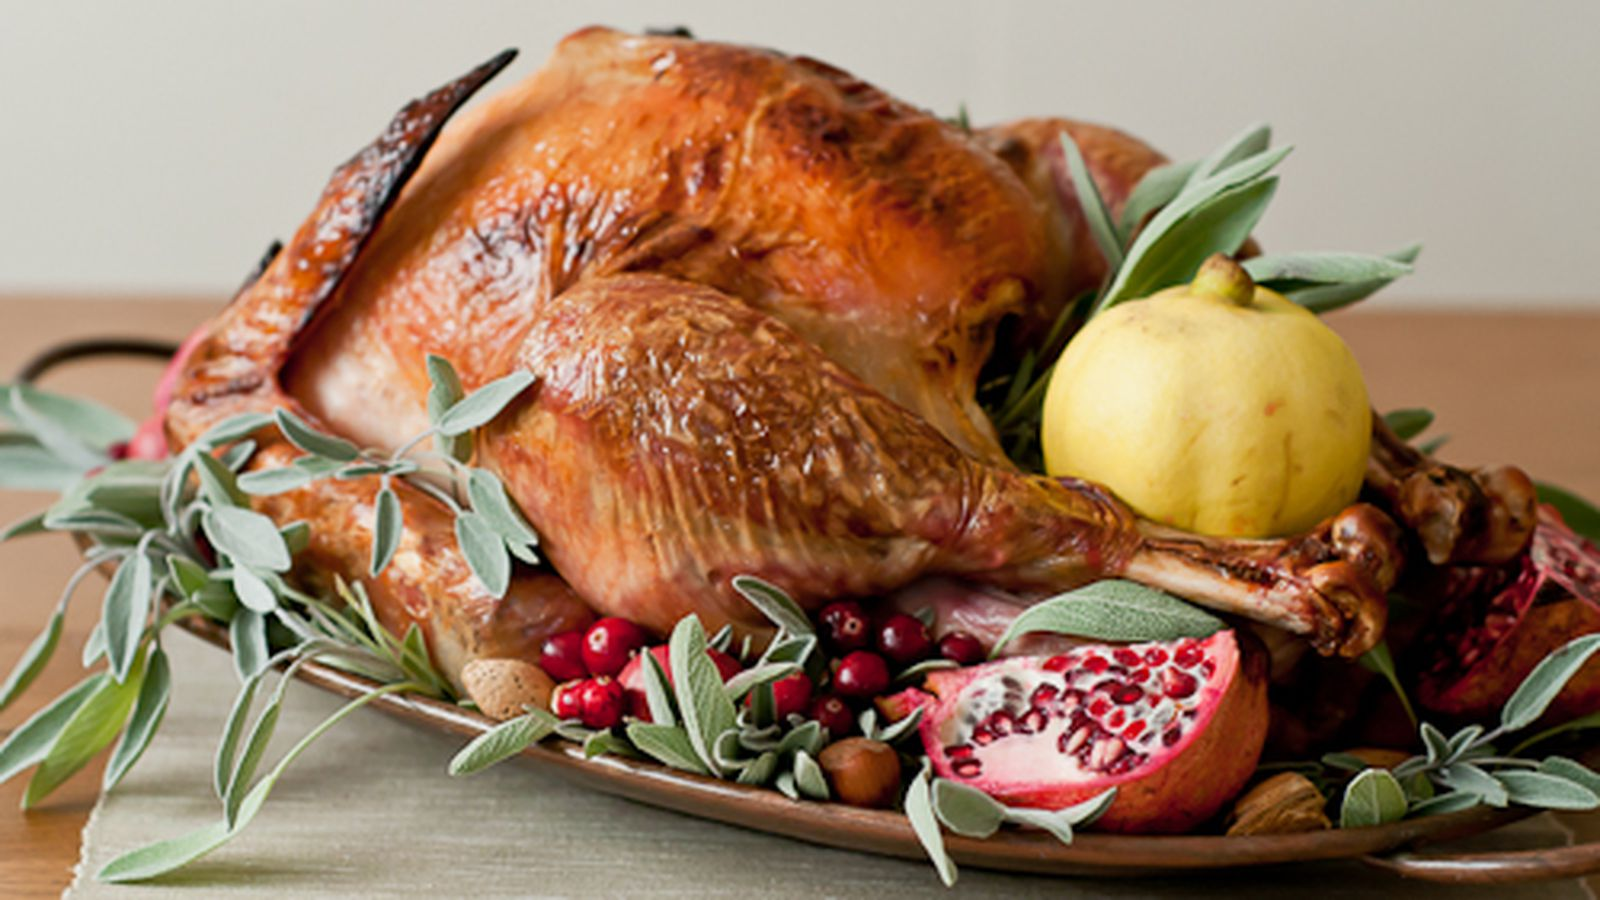 20 places to enjoy thanksgiving dinner in san diego for What to eat on thanksgiving dinner